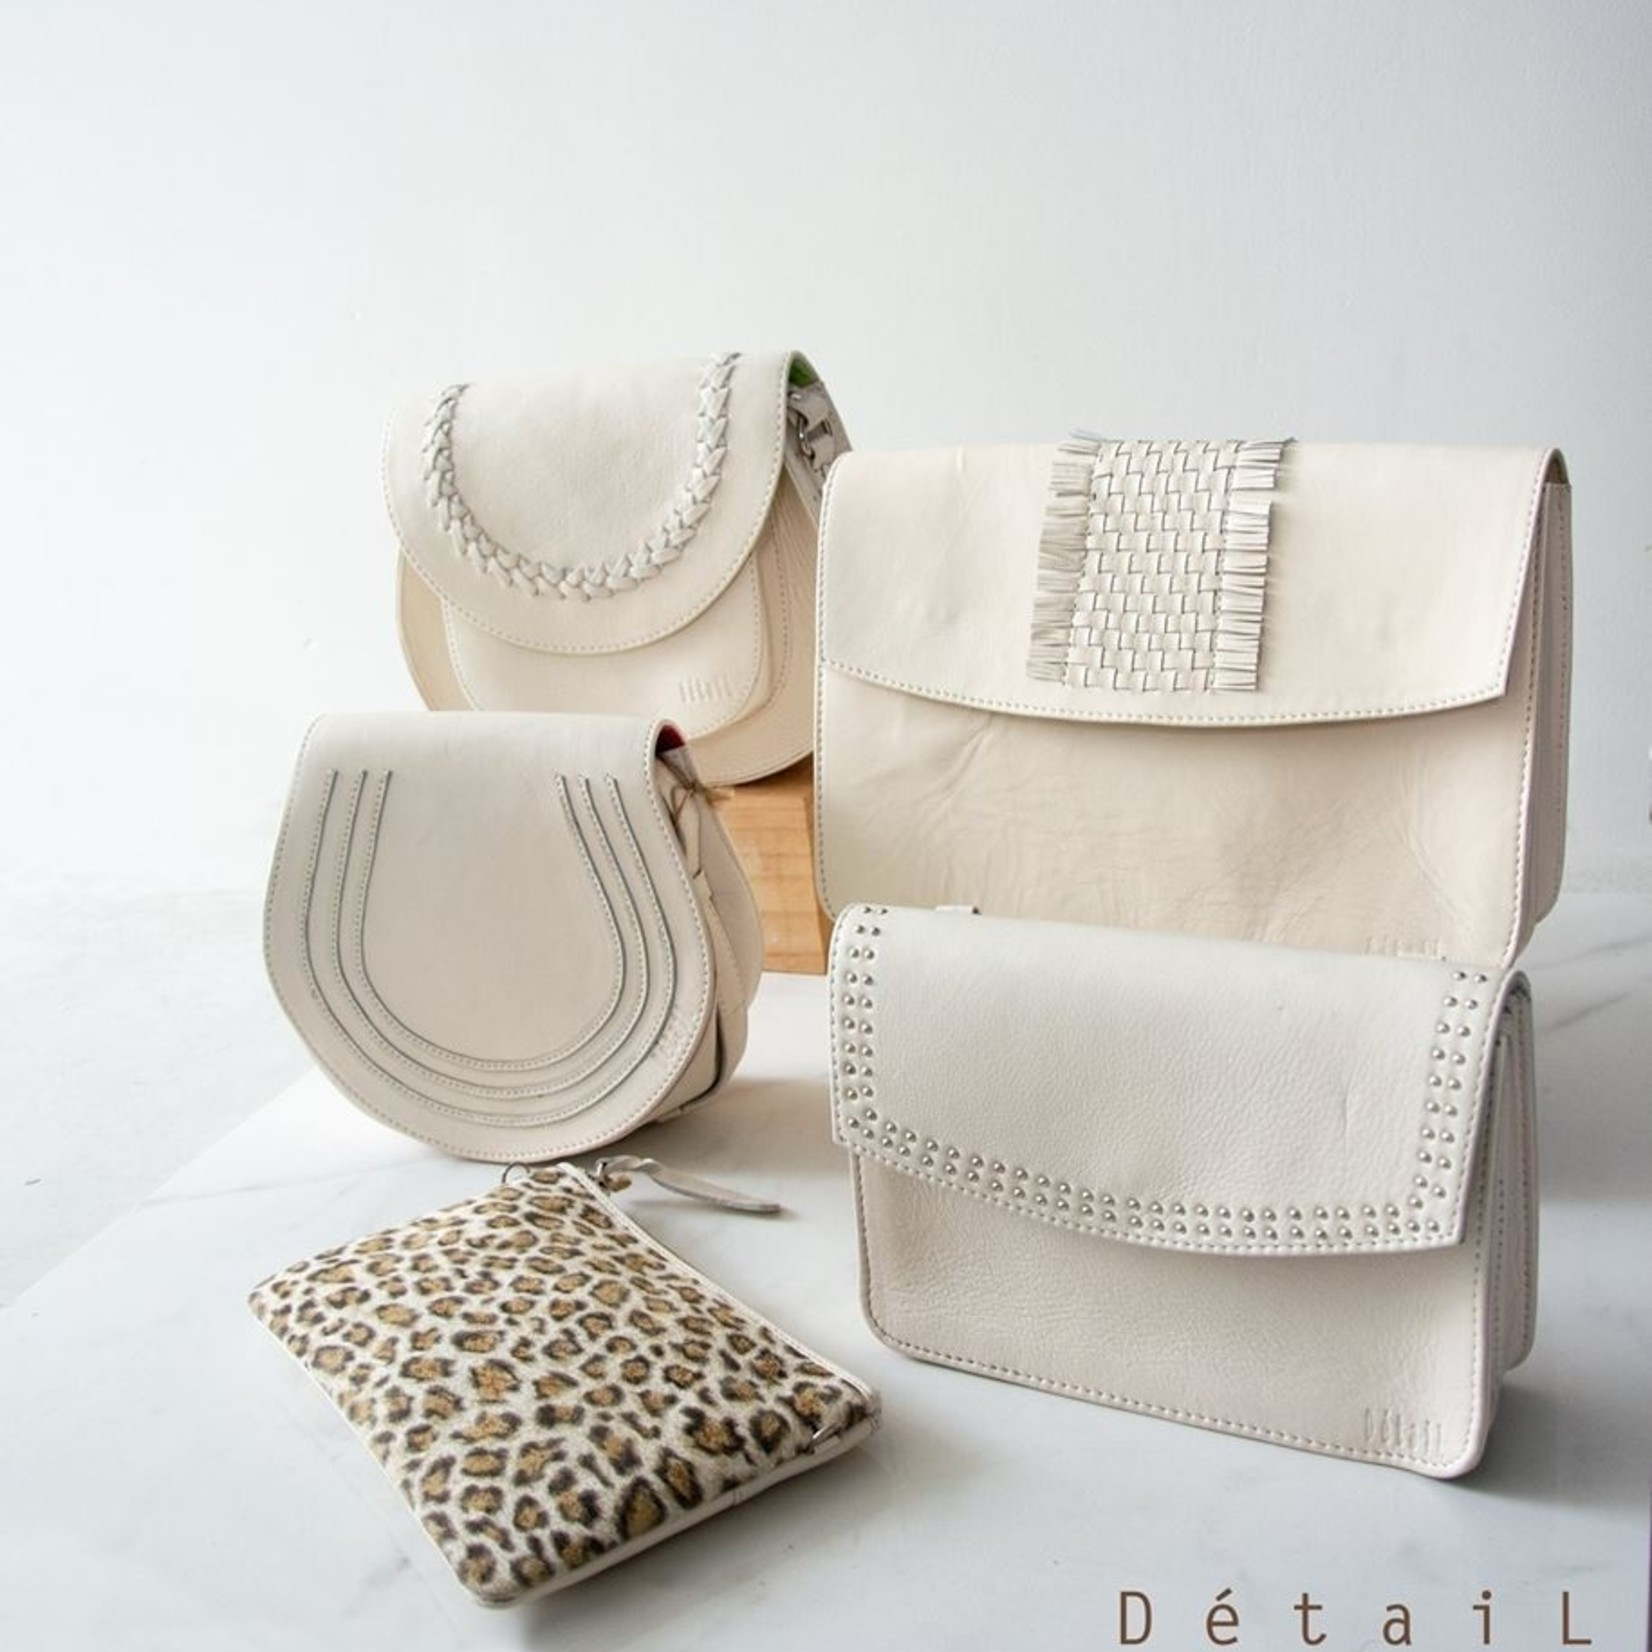 Détail Pure met studs - Off white